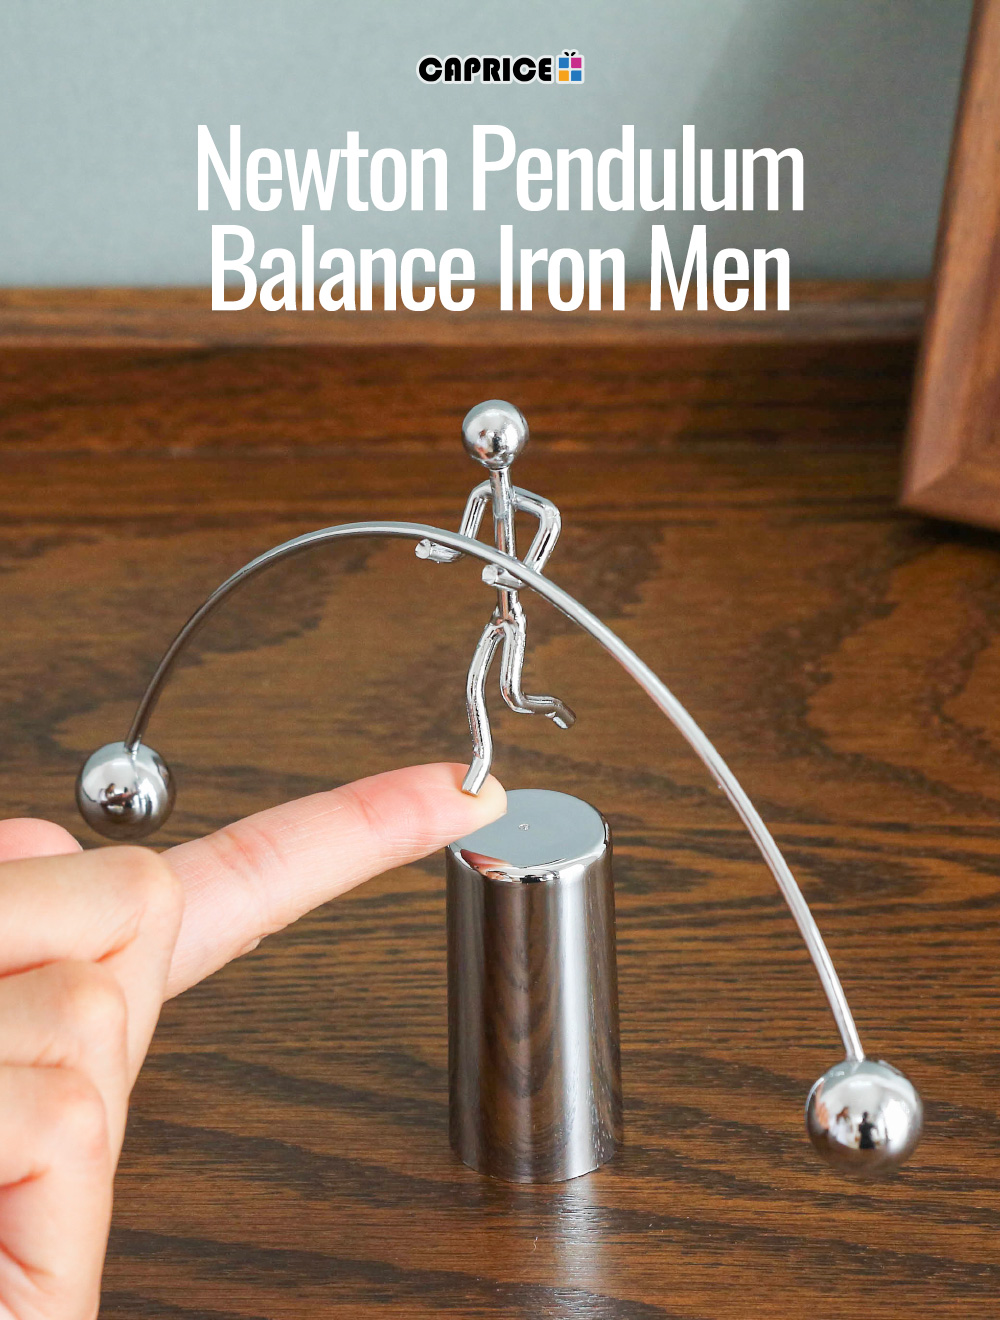 HTB193bkXOjrK1RjSsplq6xHmVXaj Newton Pendulum Cradle New Balance Men Iron Man Ball Crafts Tumbler Desk Toy Metal Decor Home Decoration Accessories XTY D